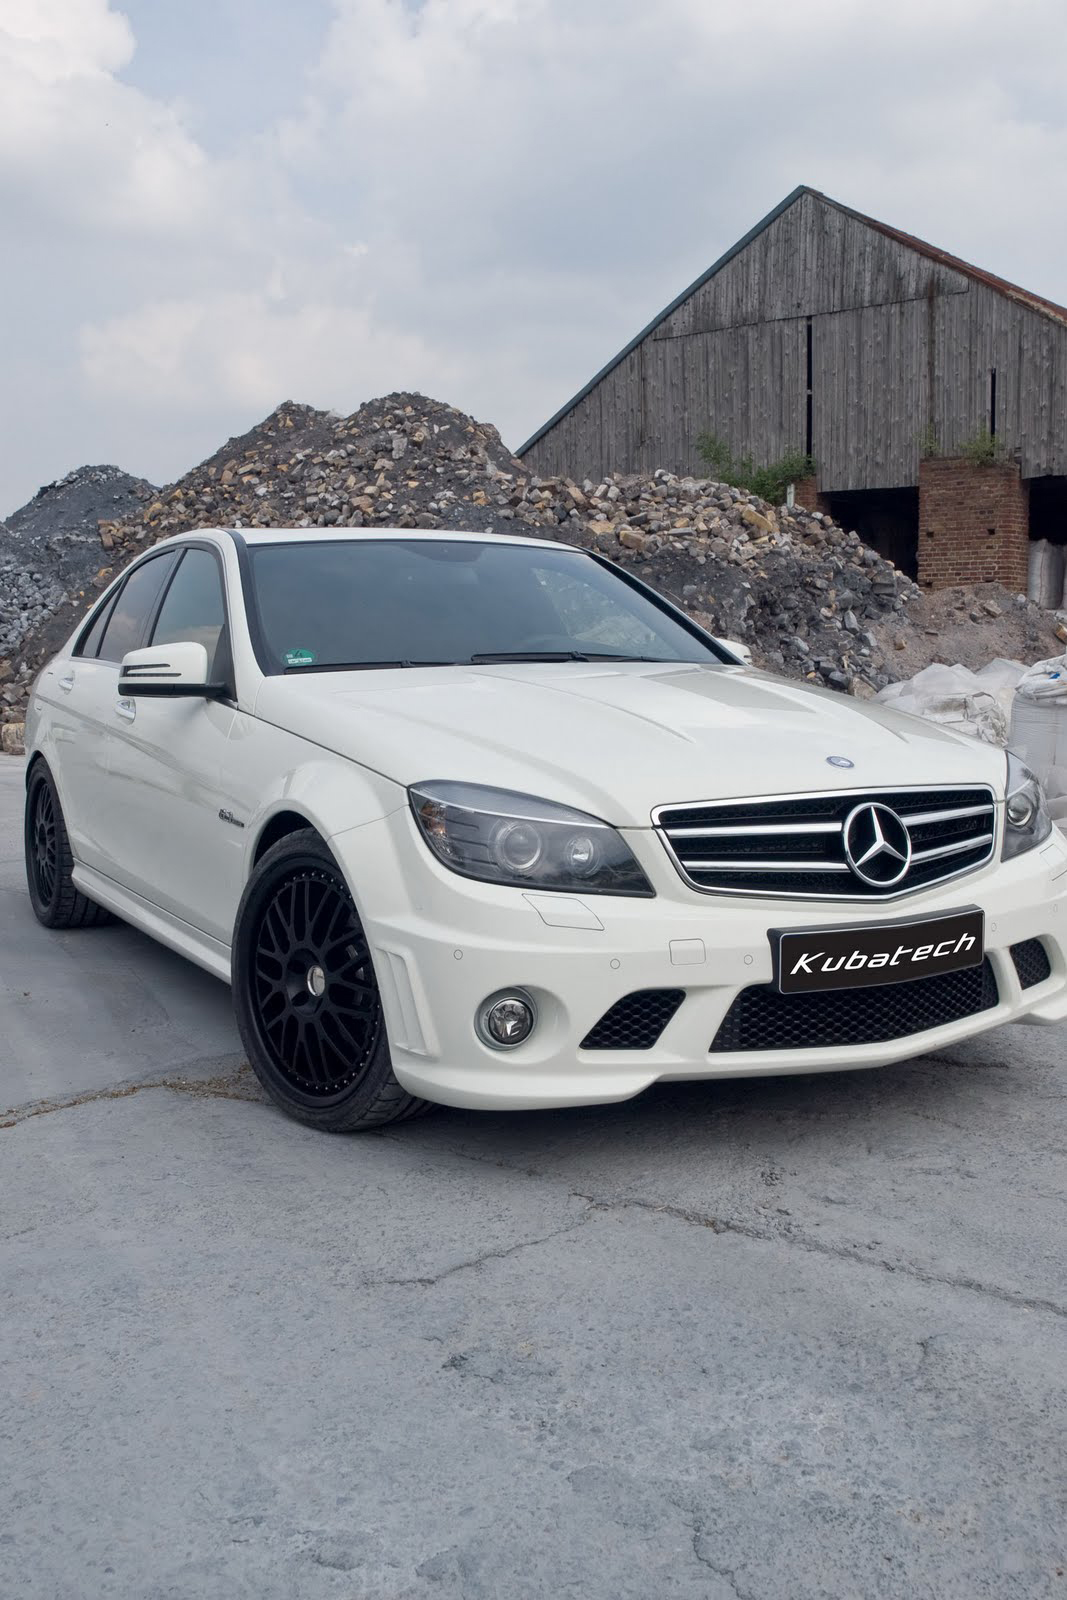 Mercedes Kubatech C63 AMG 1 Kubatech's Mercedes Benz C63 AMG –More Energy Efficient and Competent